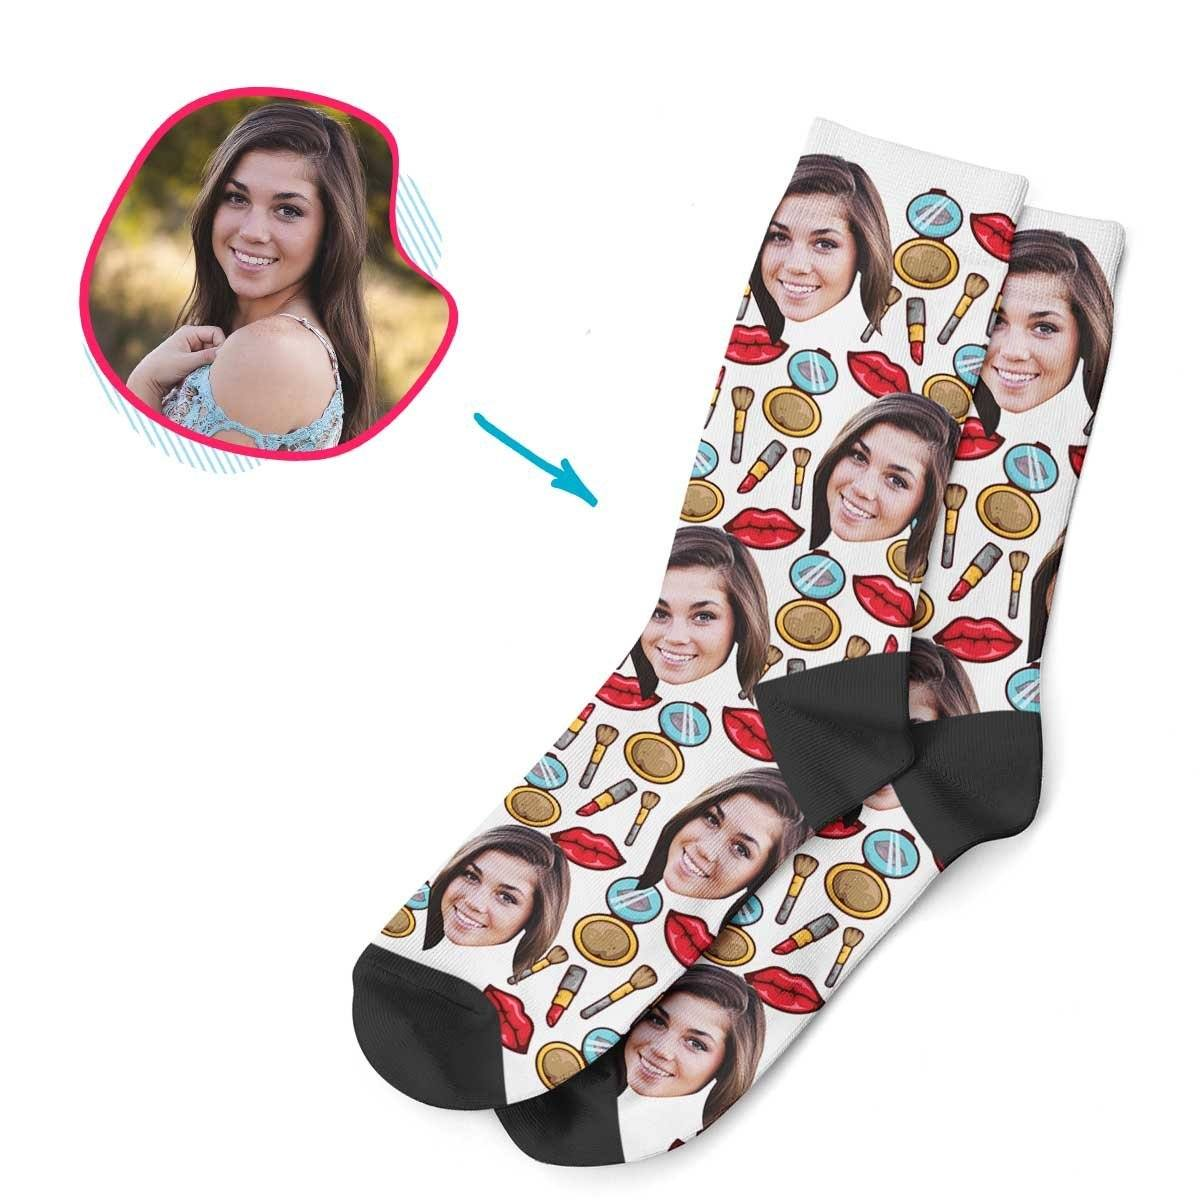 White Makeup personalized socks with photo of face printed on them